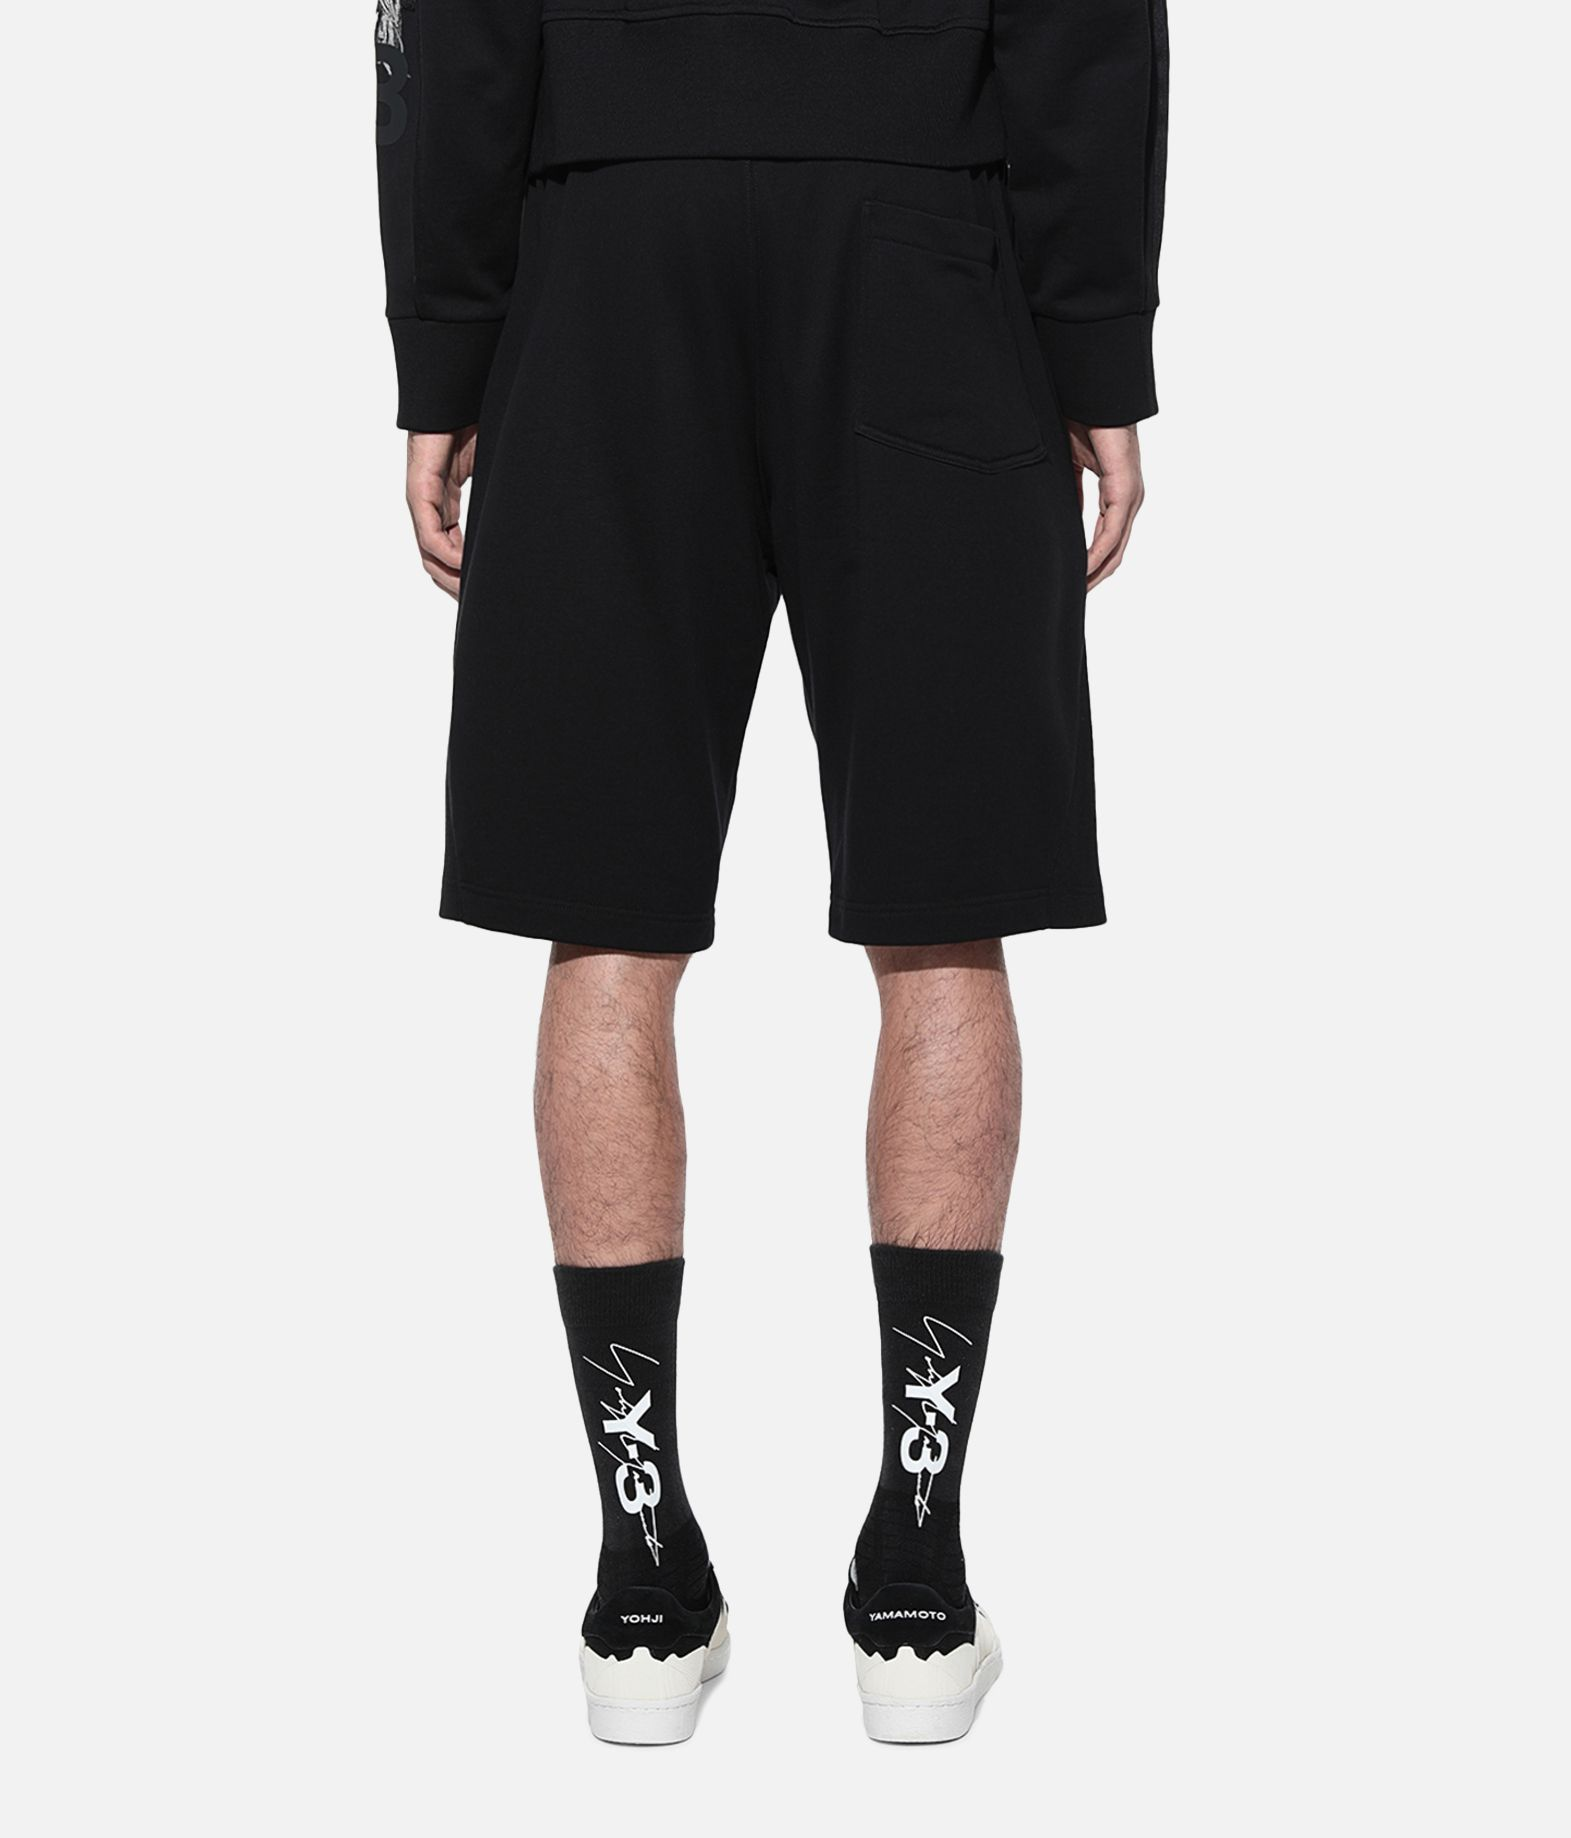 Y-3 Y-3 New Classic Shorts Sweat shorts Man d